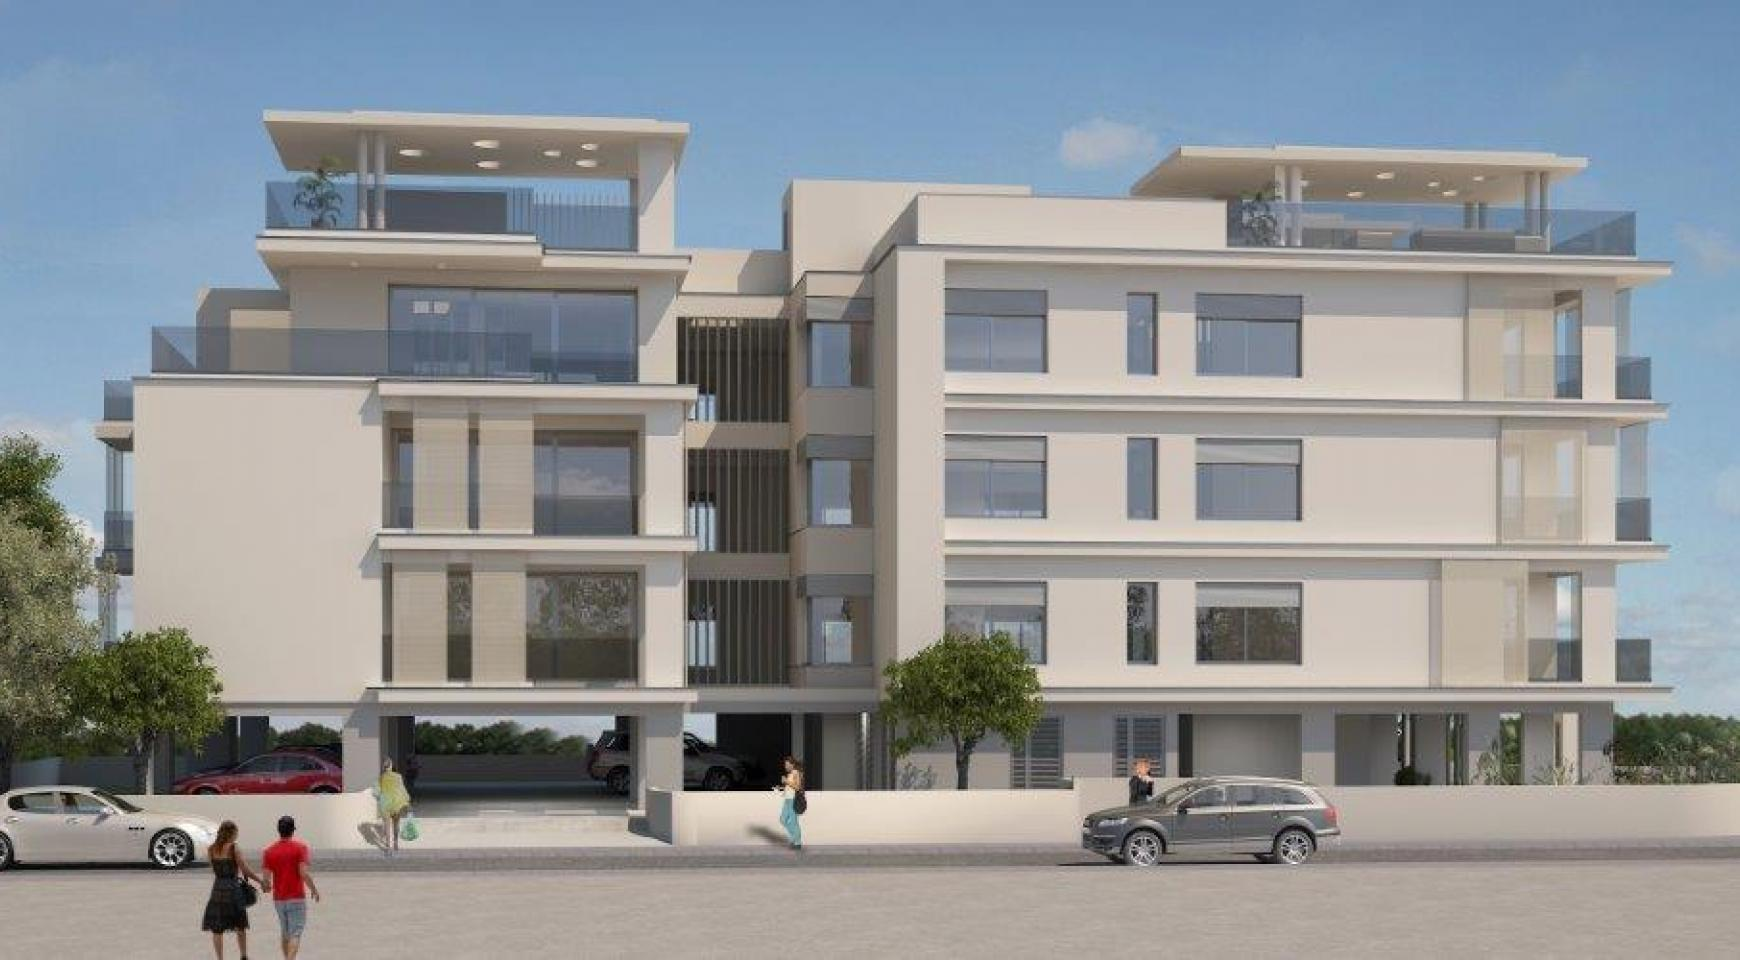 New Residential Building in the City Centre - 5